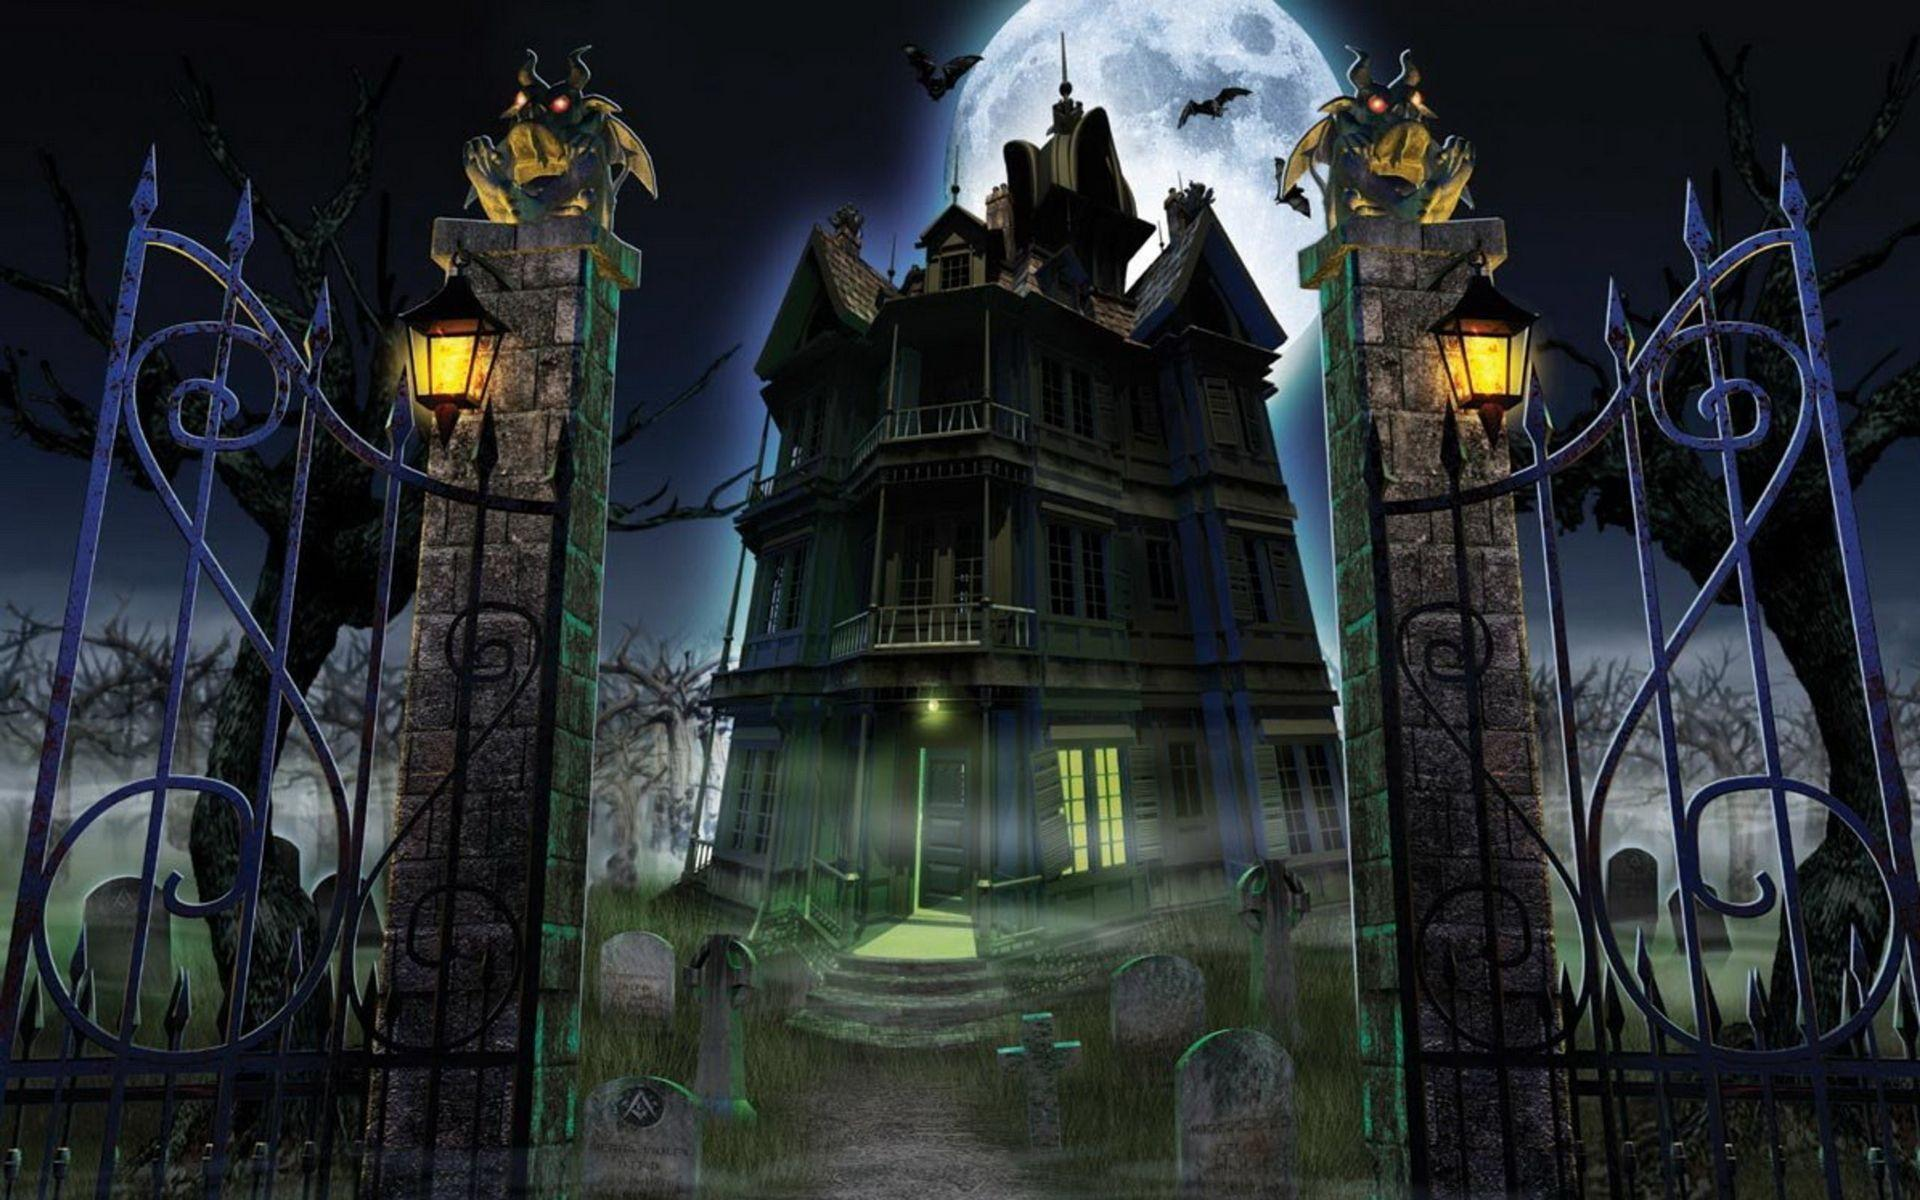 Haunted House Backgrounds - Wallpaper Cave